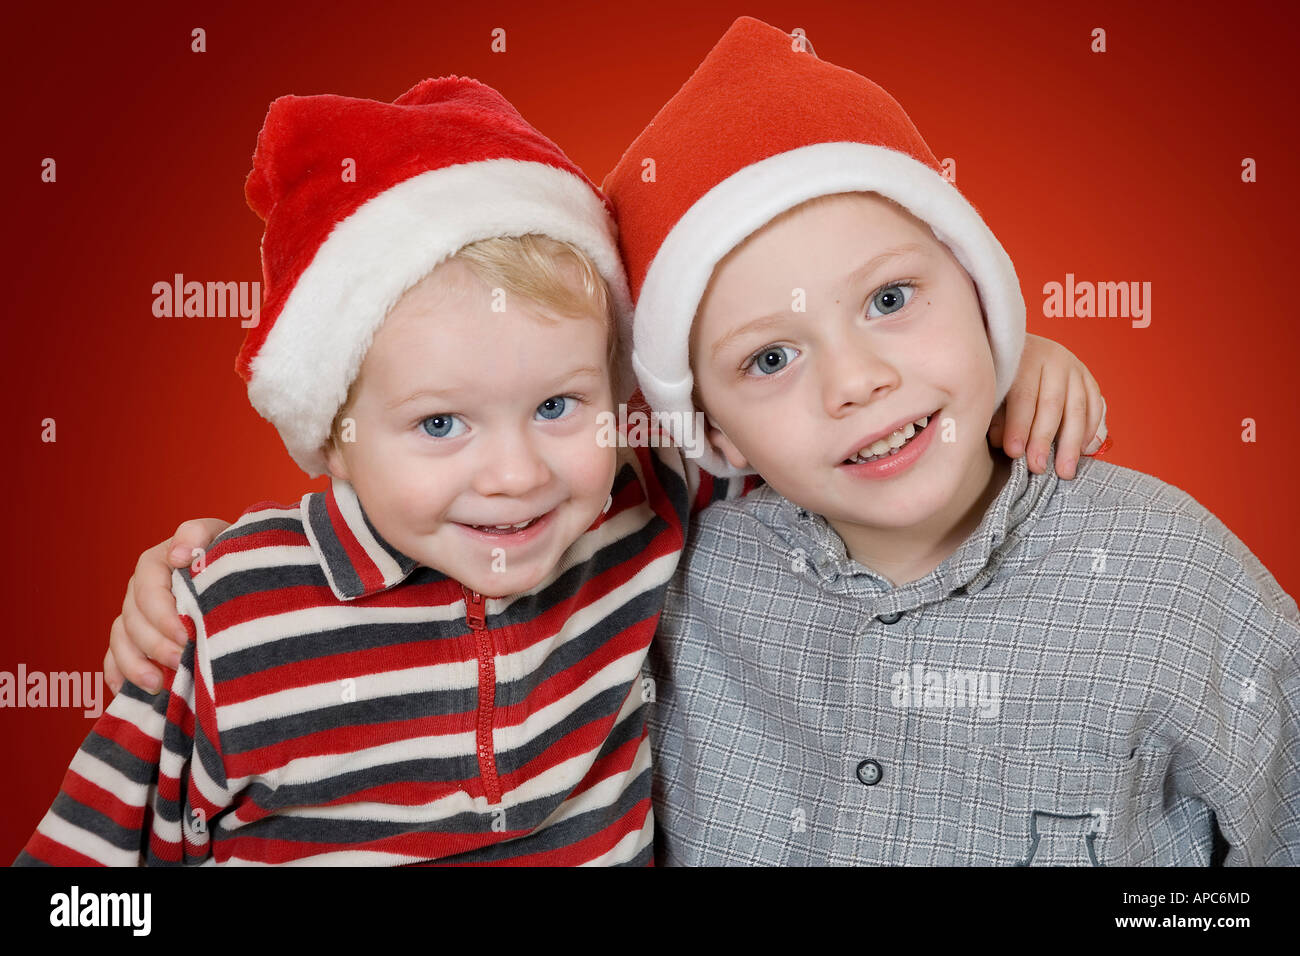 Two little boys with X-Mas caps - Stock Image